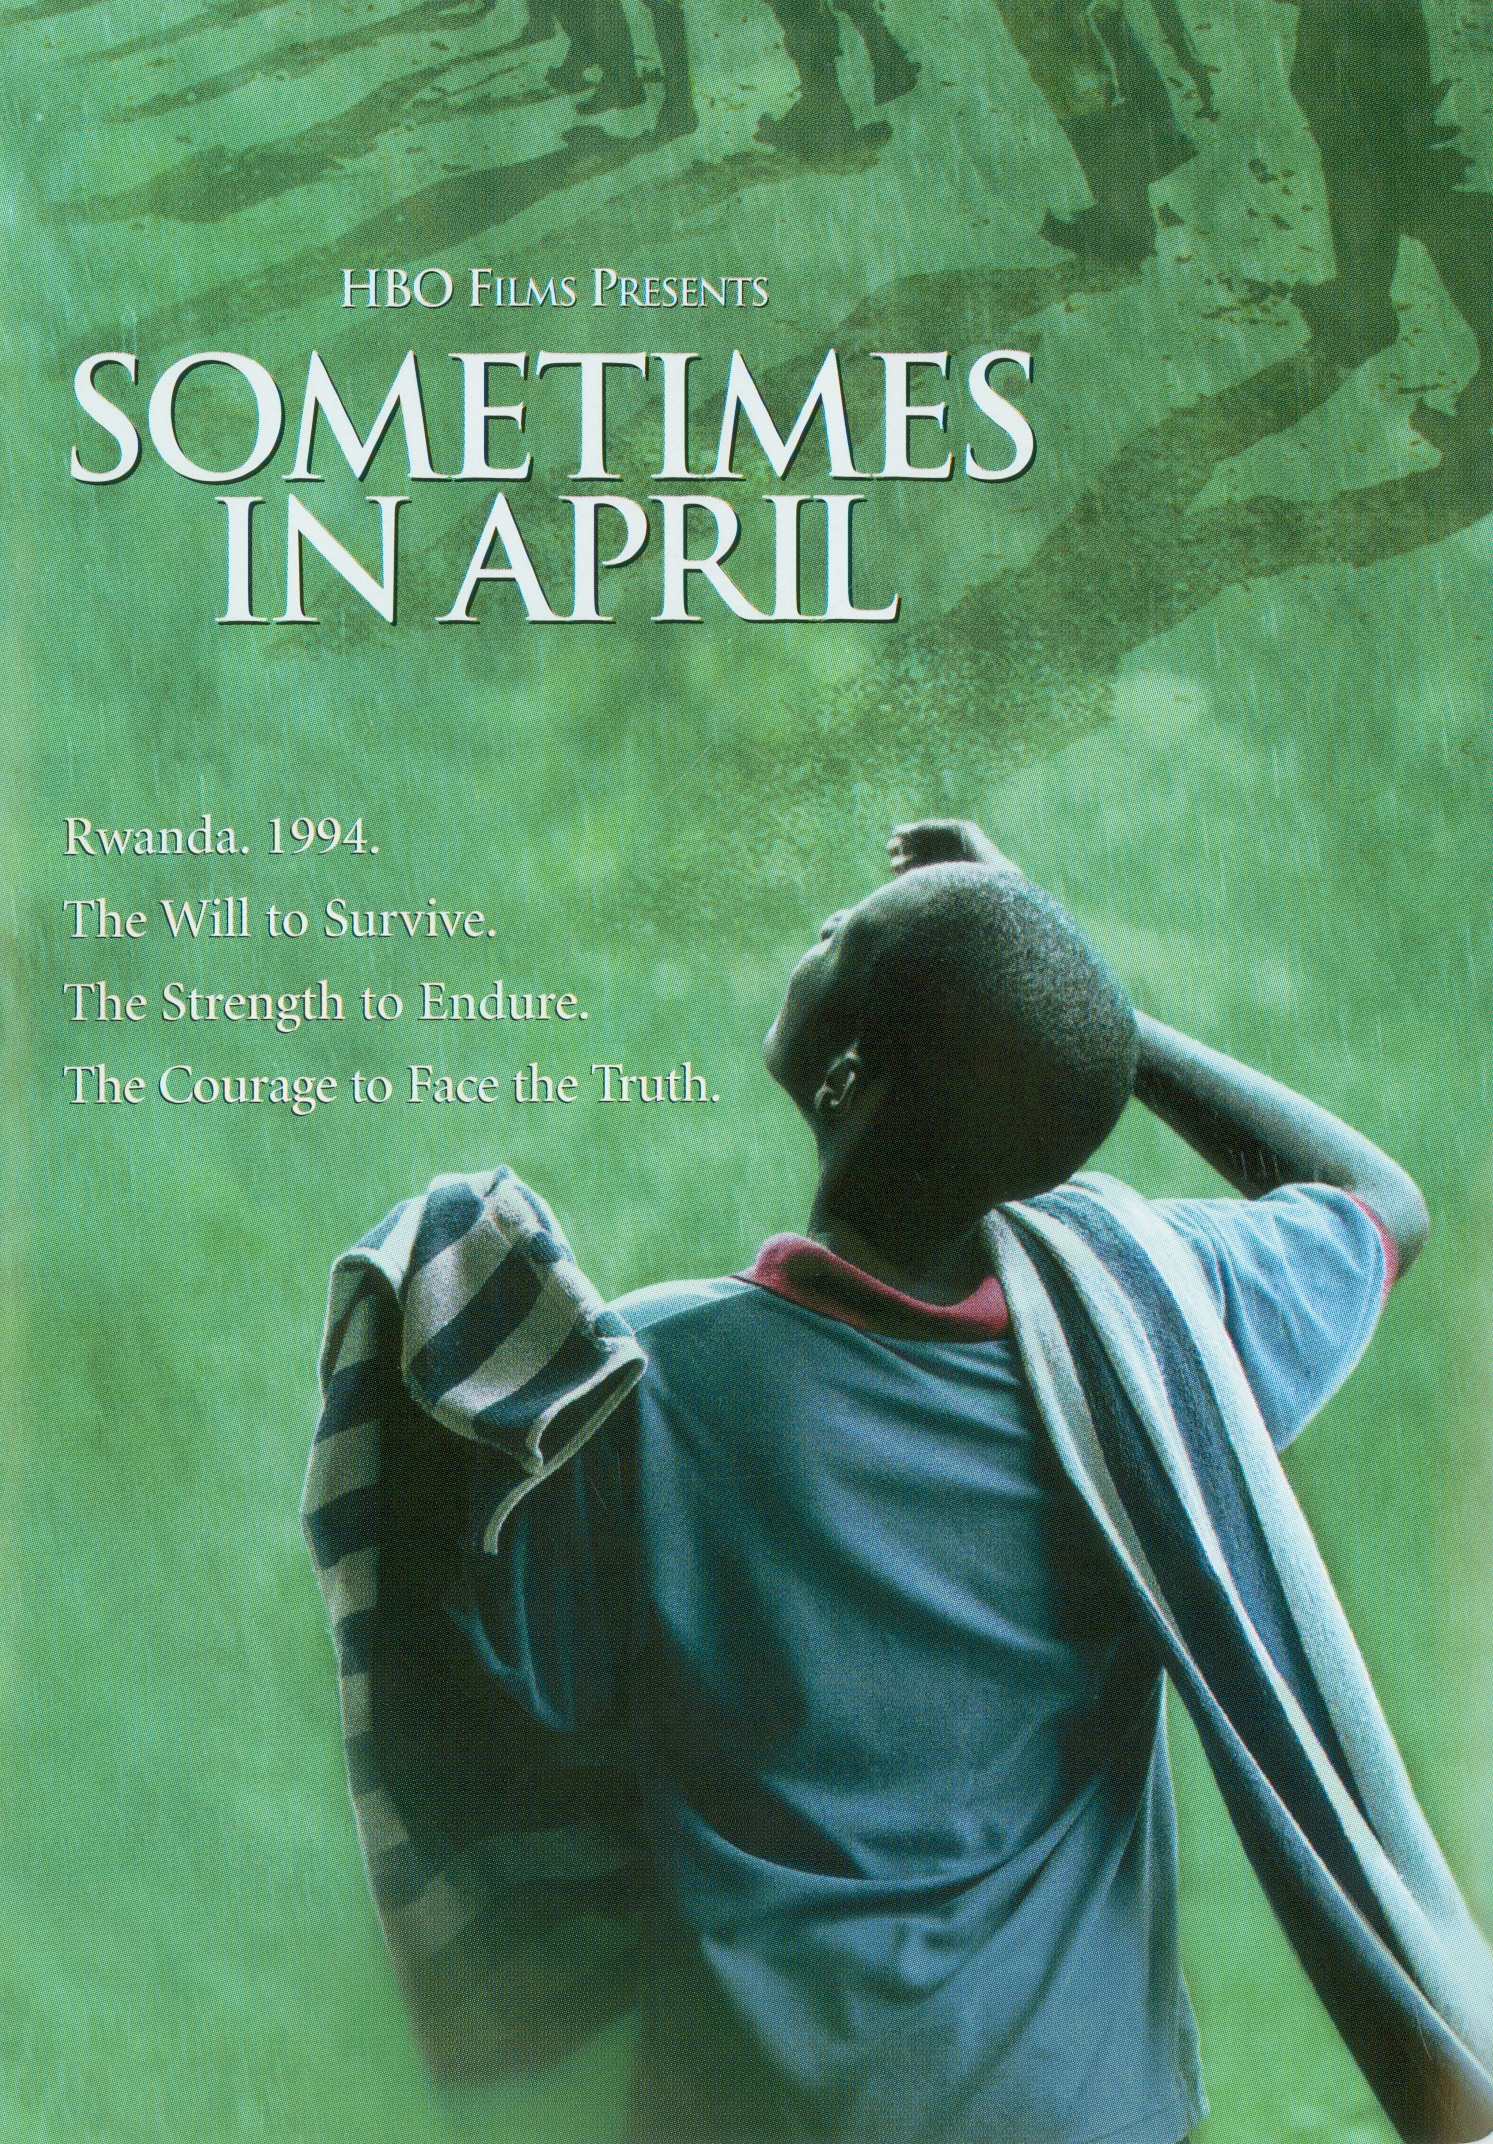 Sometimes in April[videorecording] /HBO Films presentsa Raoul Peck film ; a Velvet Film production in association with Yolo Films ; written and directed by Raoul Peck ; producer, Daniel Delume